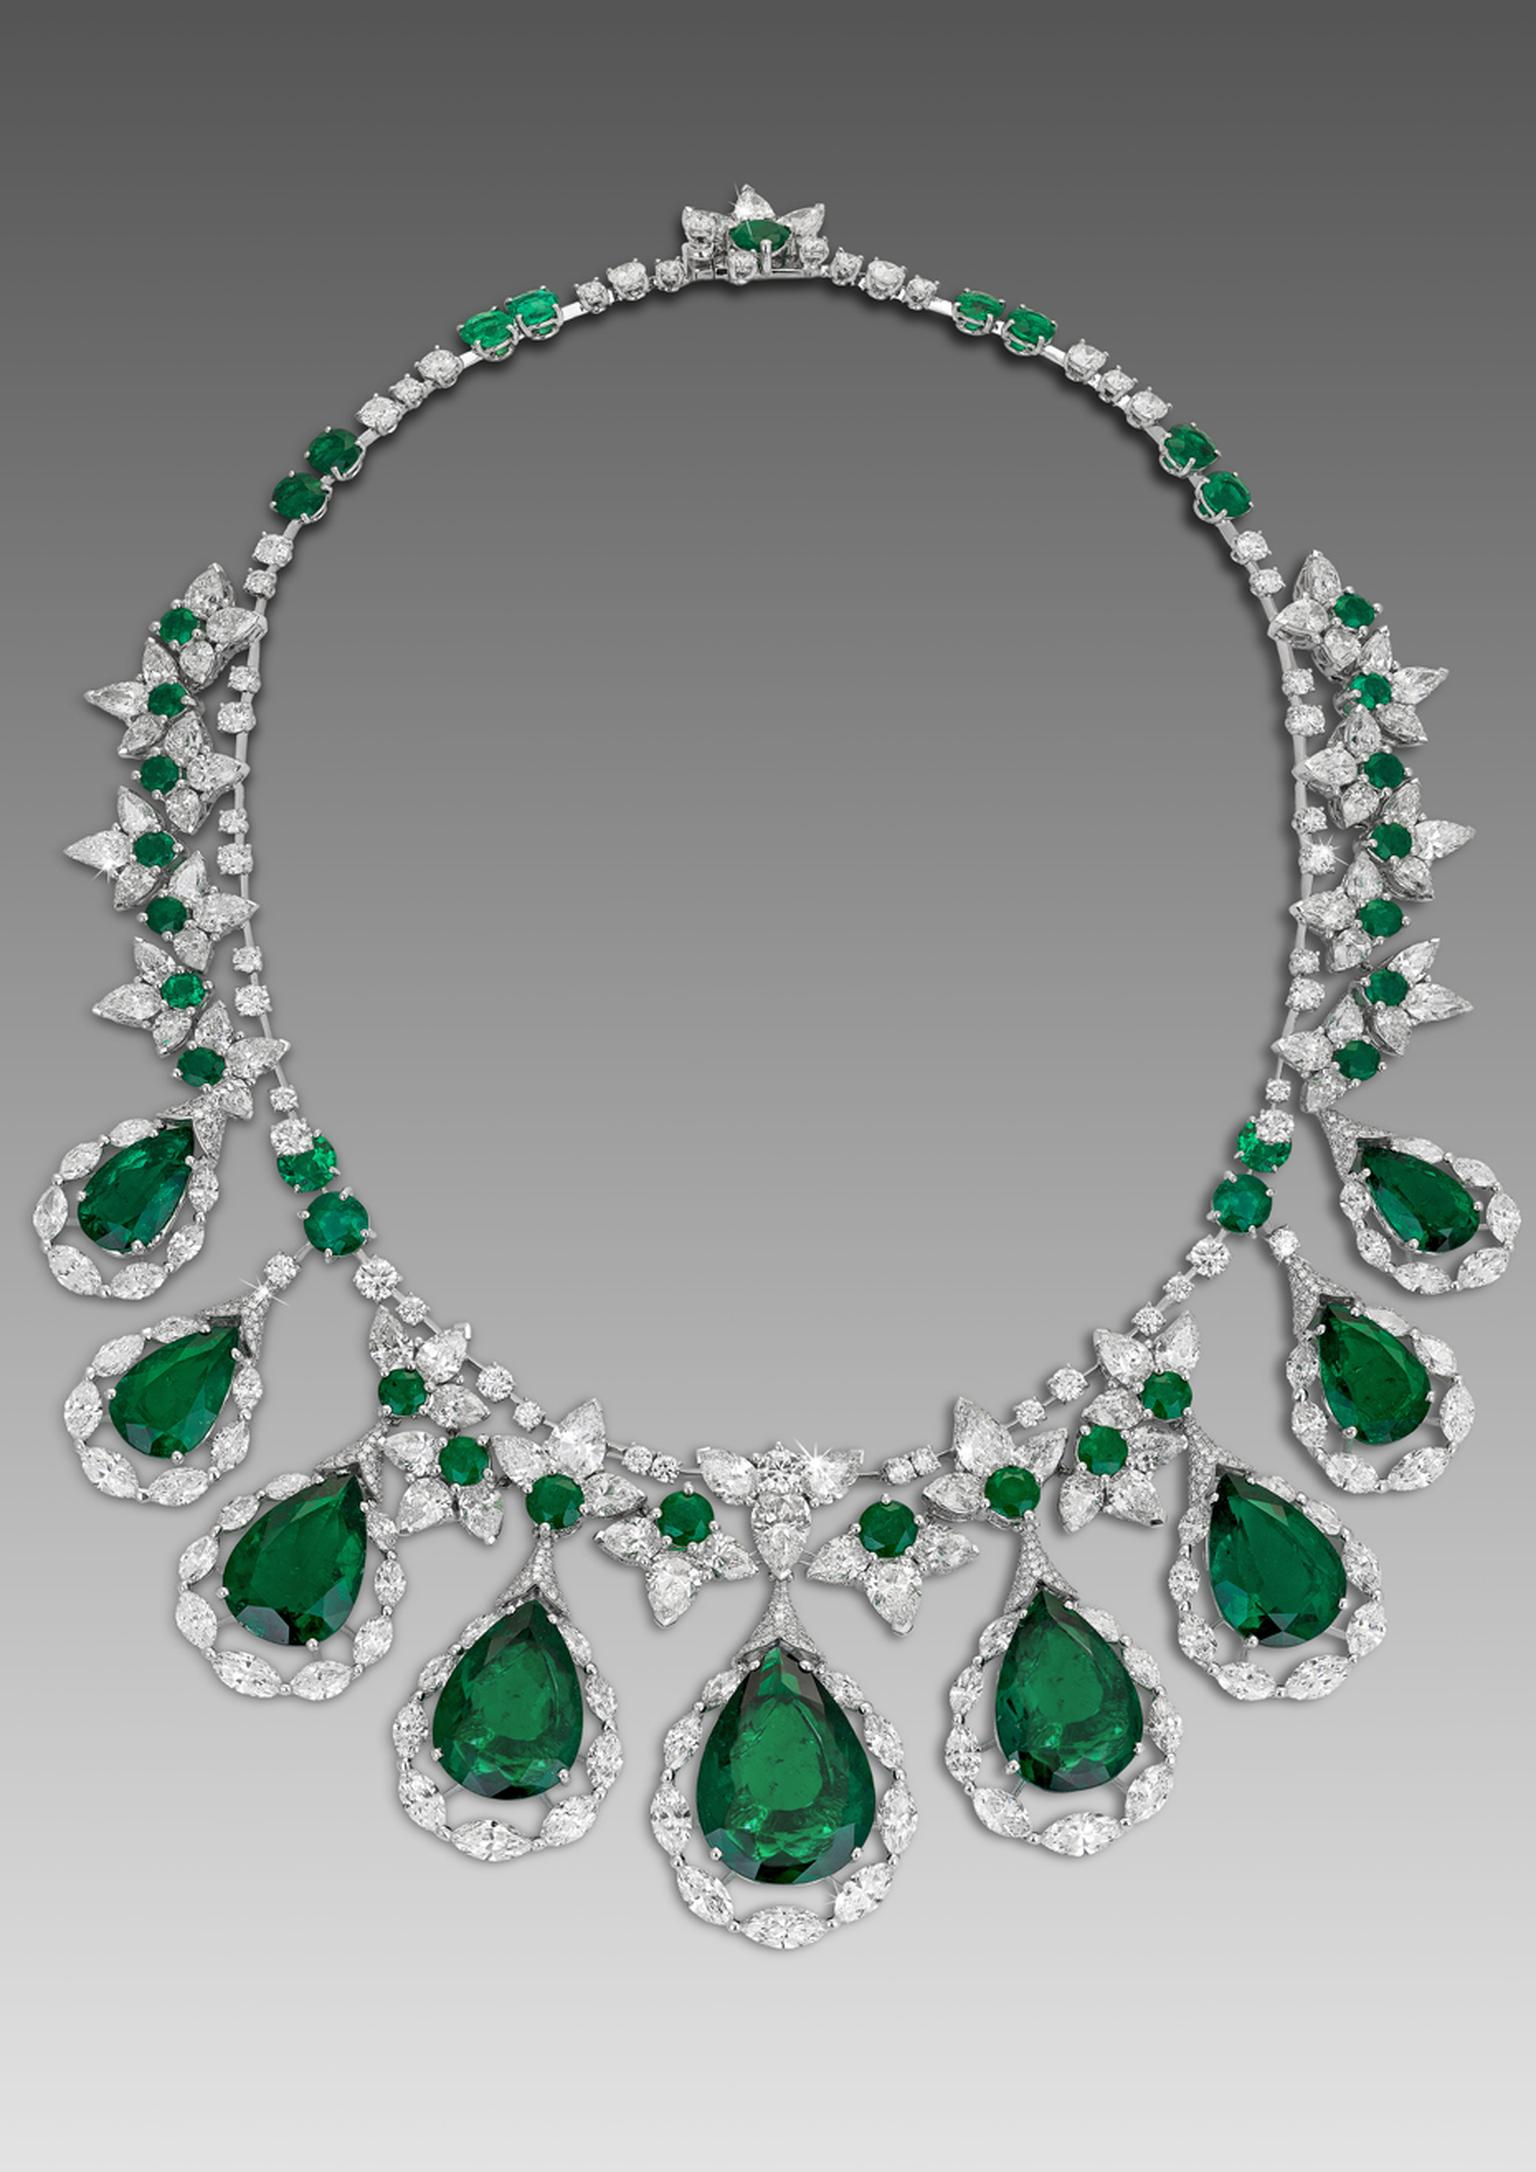 David Morris Fan necklace featuring pear and round shaped Colombian emeralds with marquise and pear-shaped diamonds.